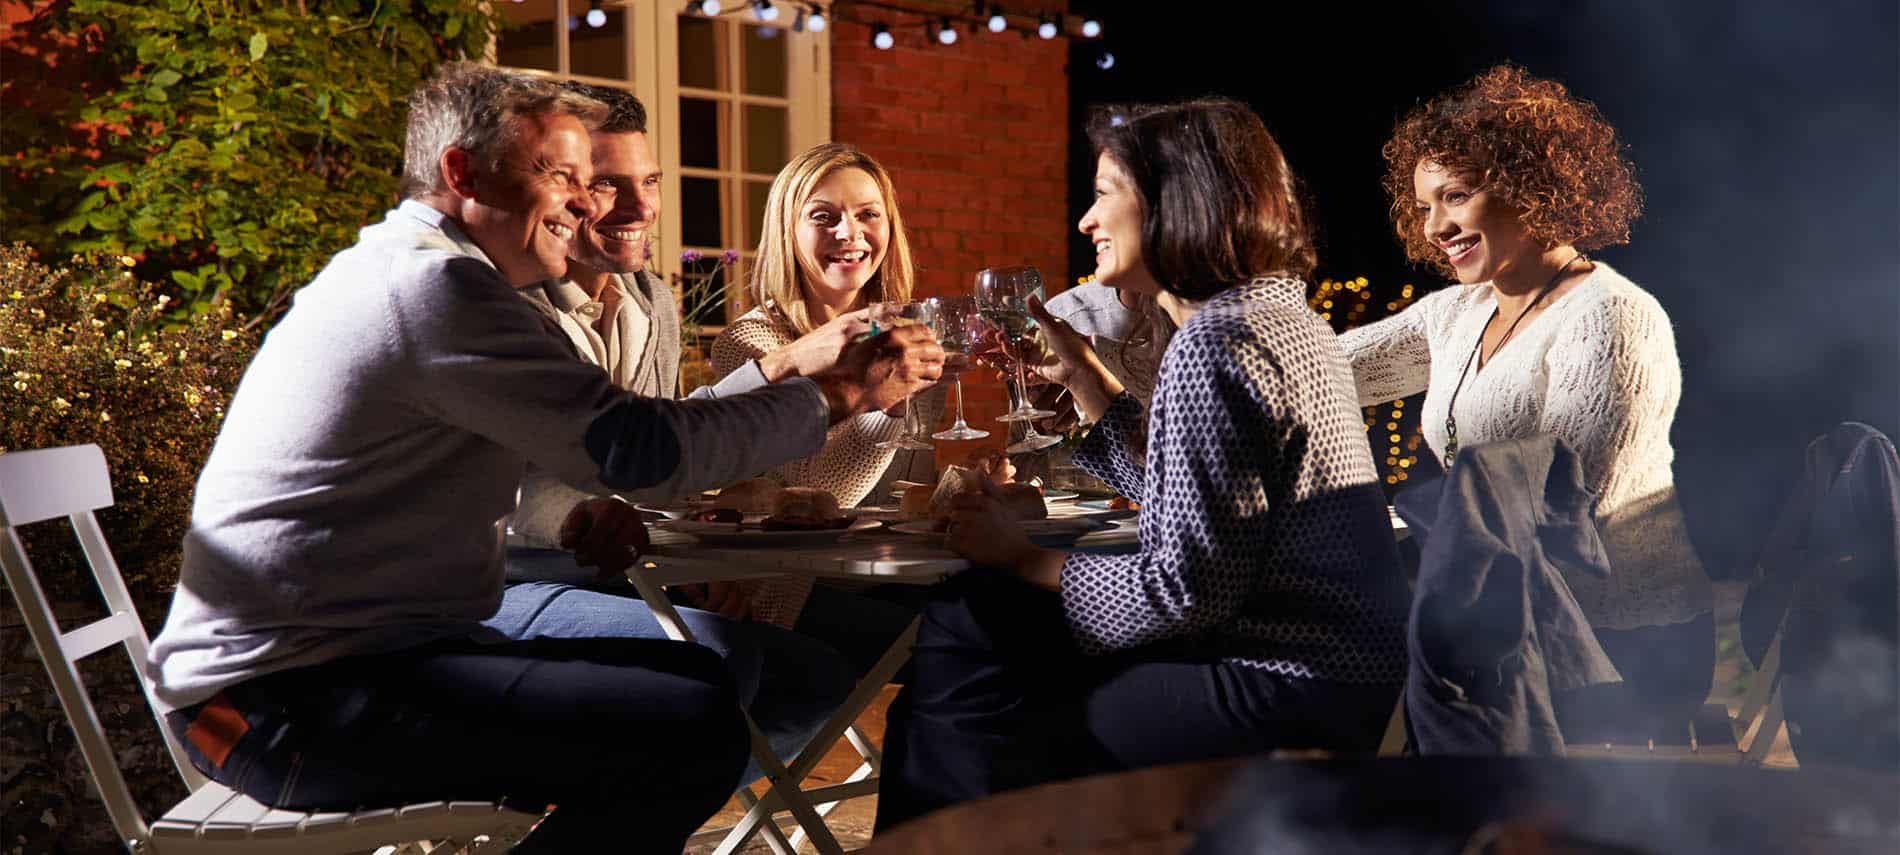 Two couples sitting around a firepit on a porch with lights around the trees.